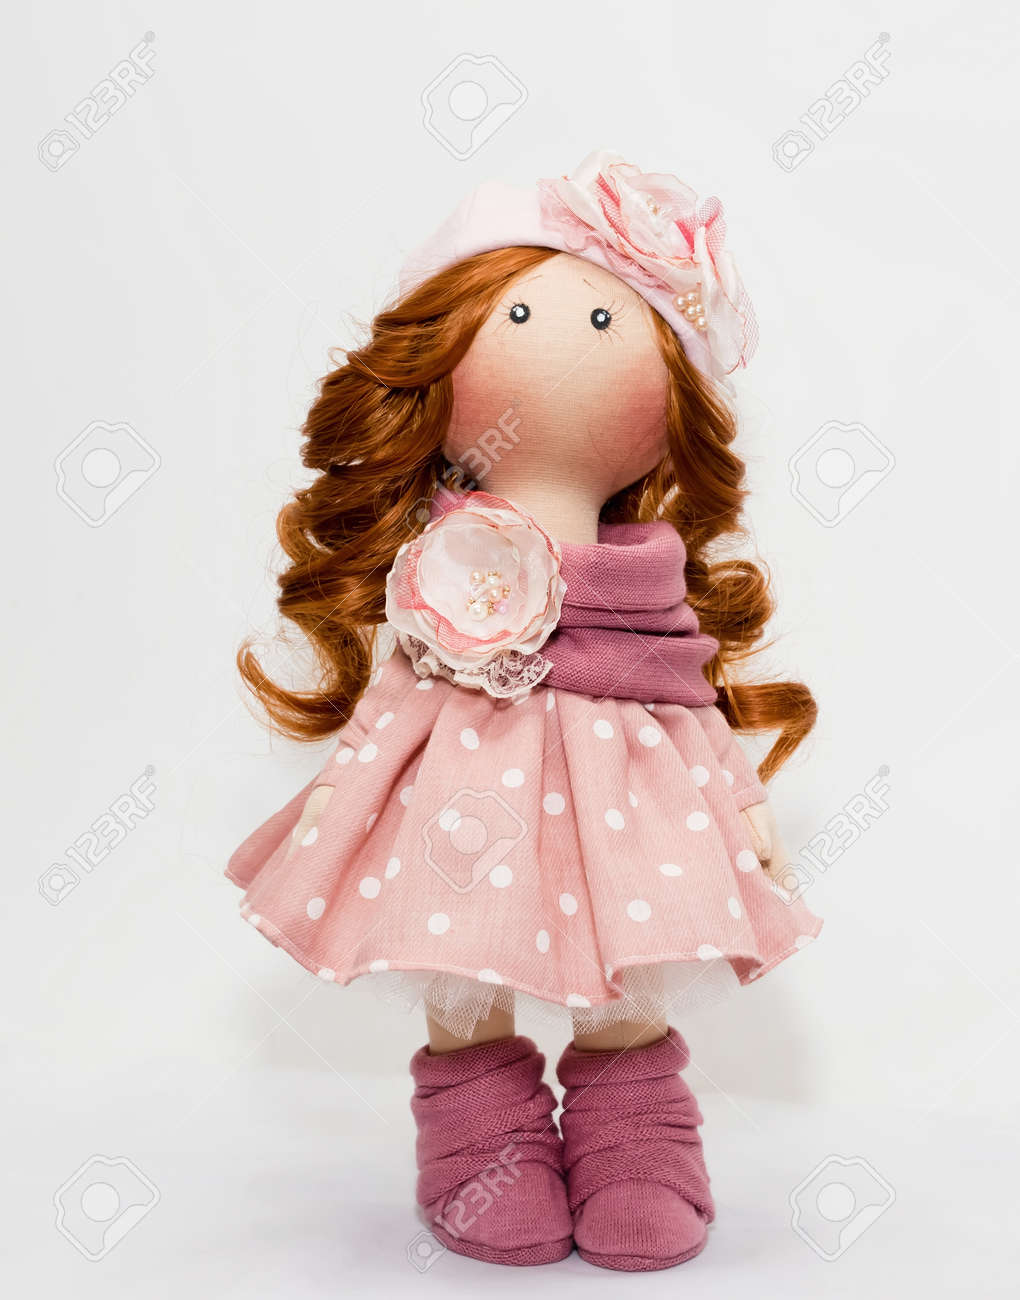 Collectible handmade doll in pink dress with white polka dots in the style of the 50s Standard-Bild - 64579685